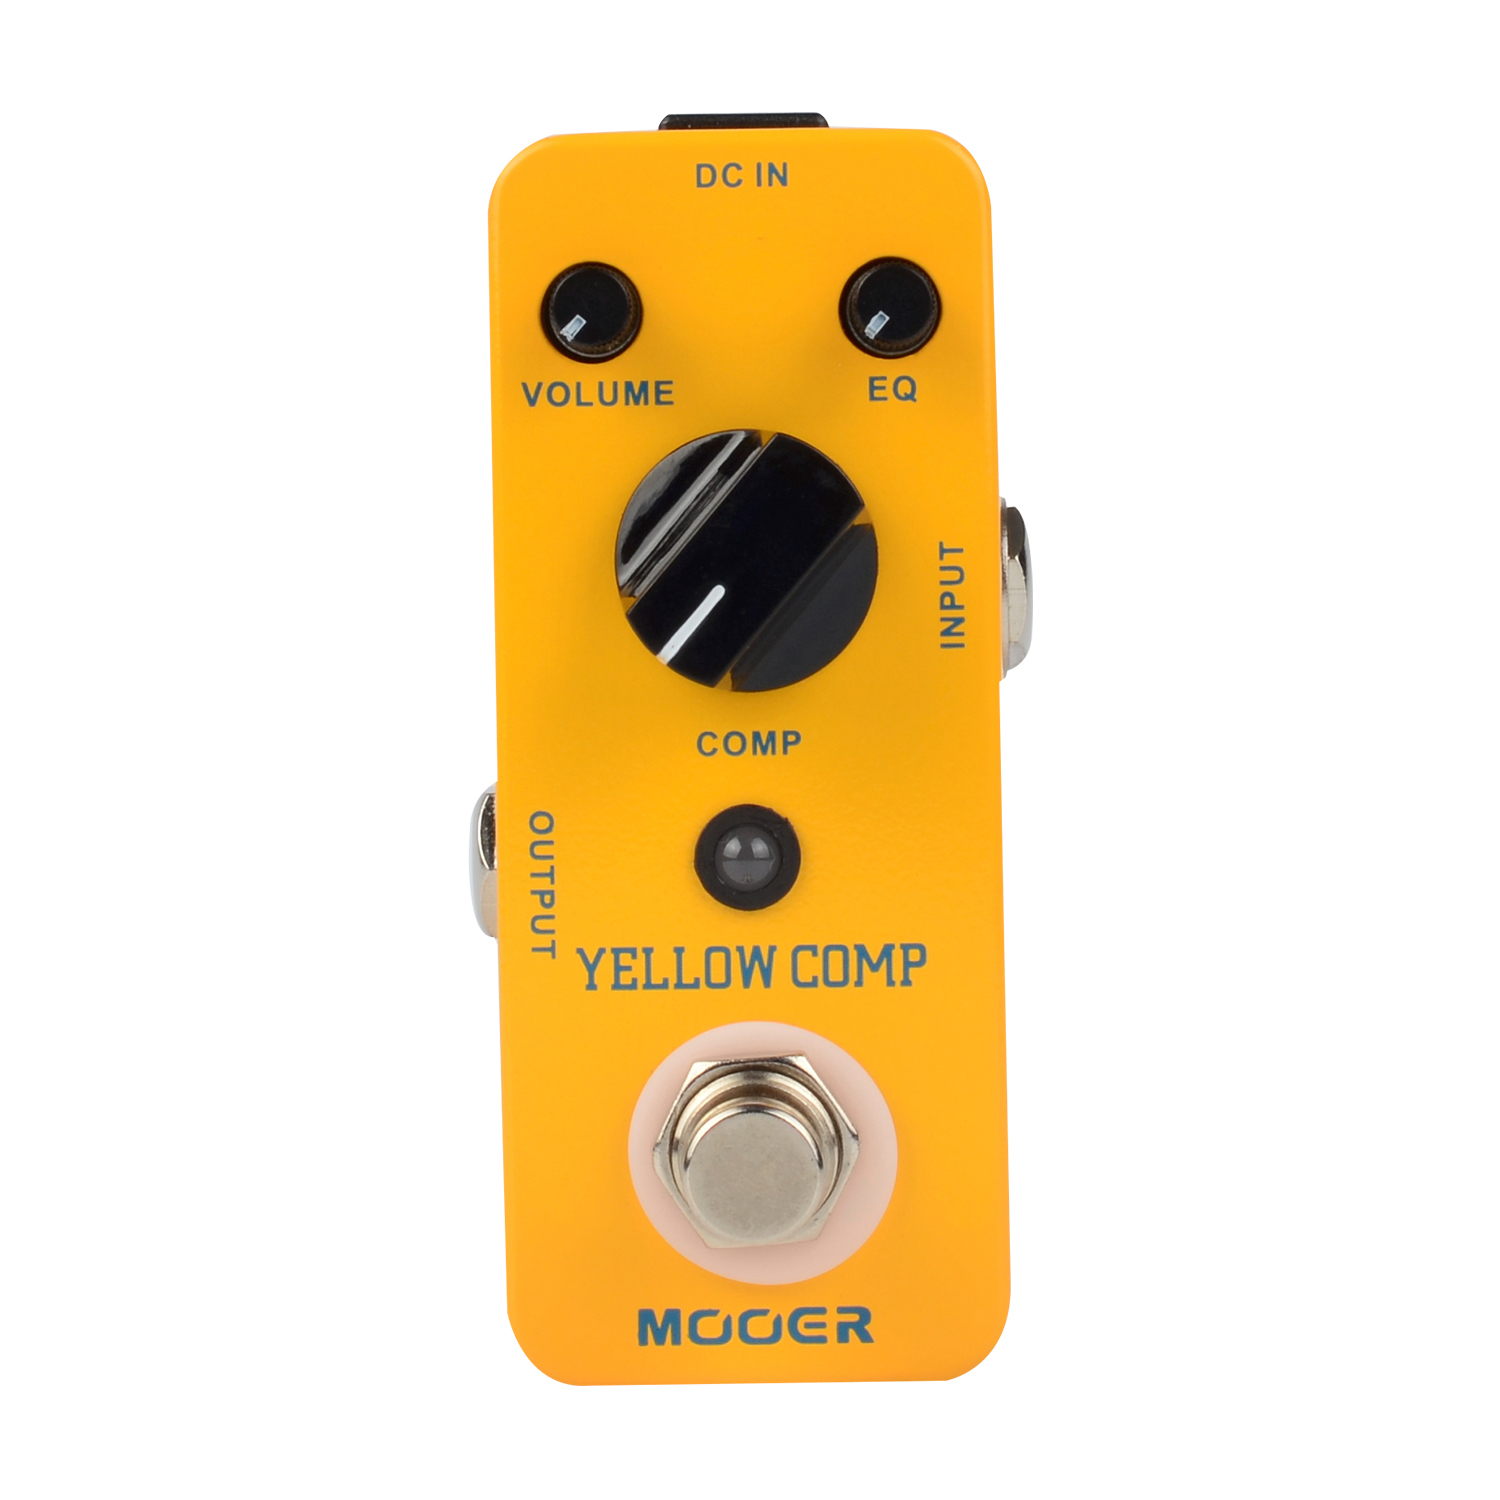 Mooer Yellow Comp Compressor Sound Guitar Effect Pedal True bypass Metal Shell MCS2 mooer ensemble queen bass chorus effects effect pedal true bypass rate knob high quality components depth knob rich sound